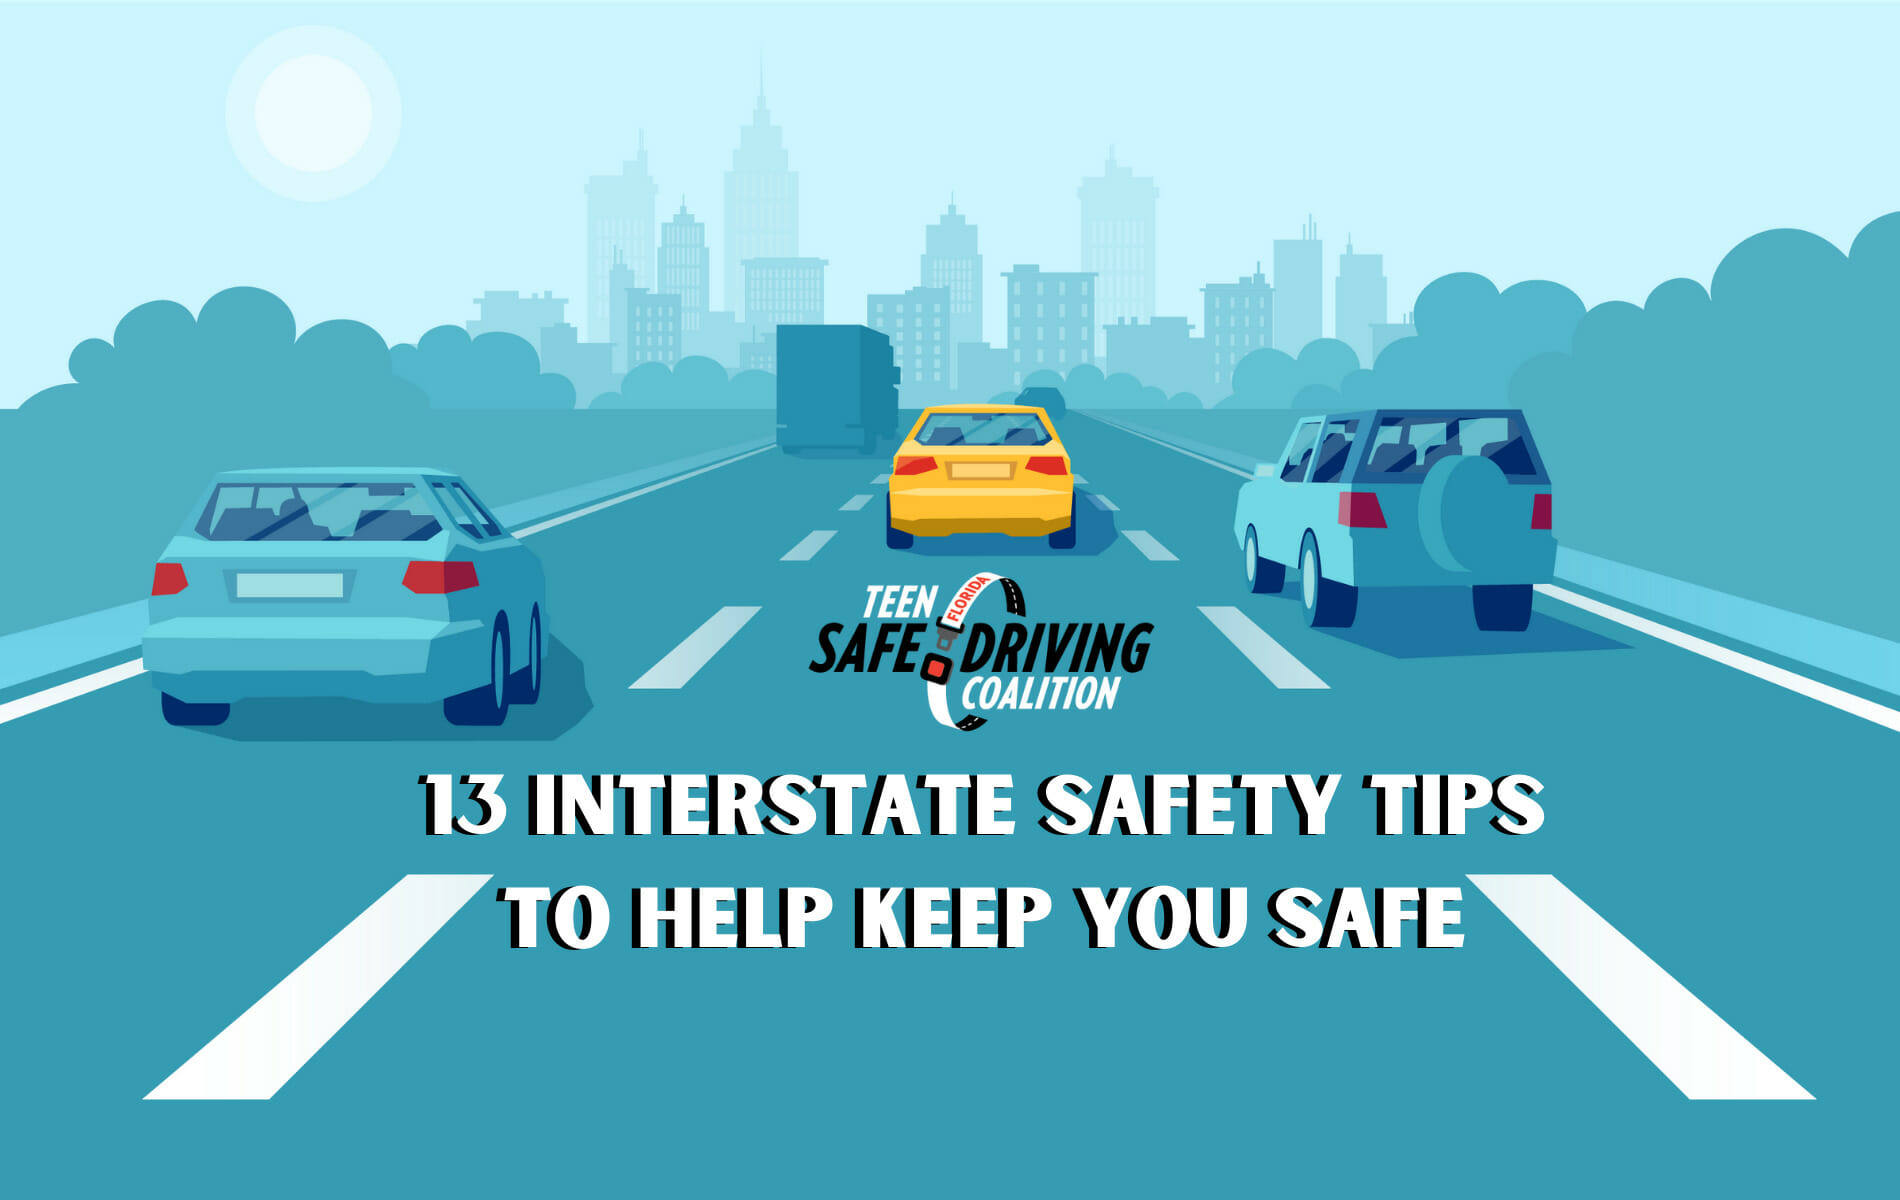 13 Interstate Safety Tips to Help Keep You Safe